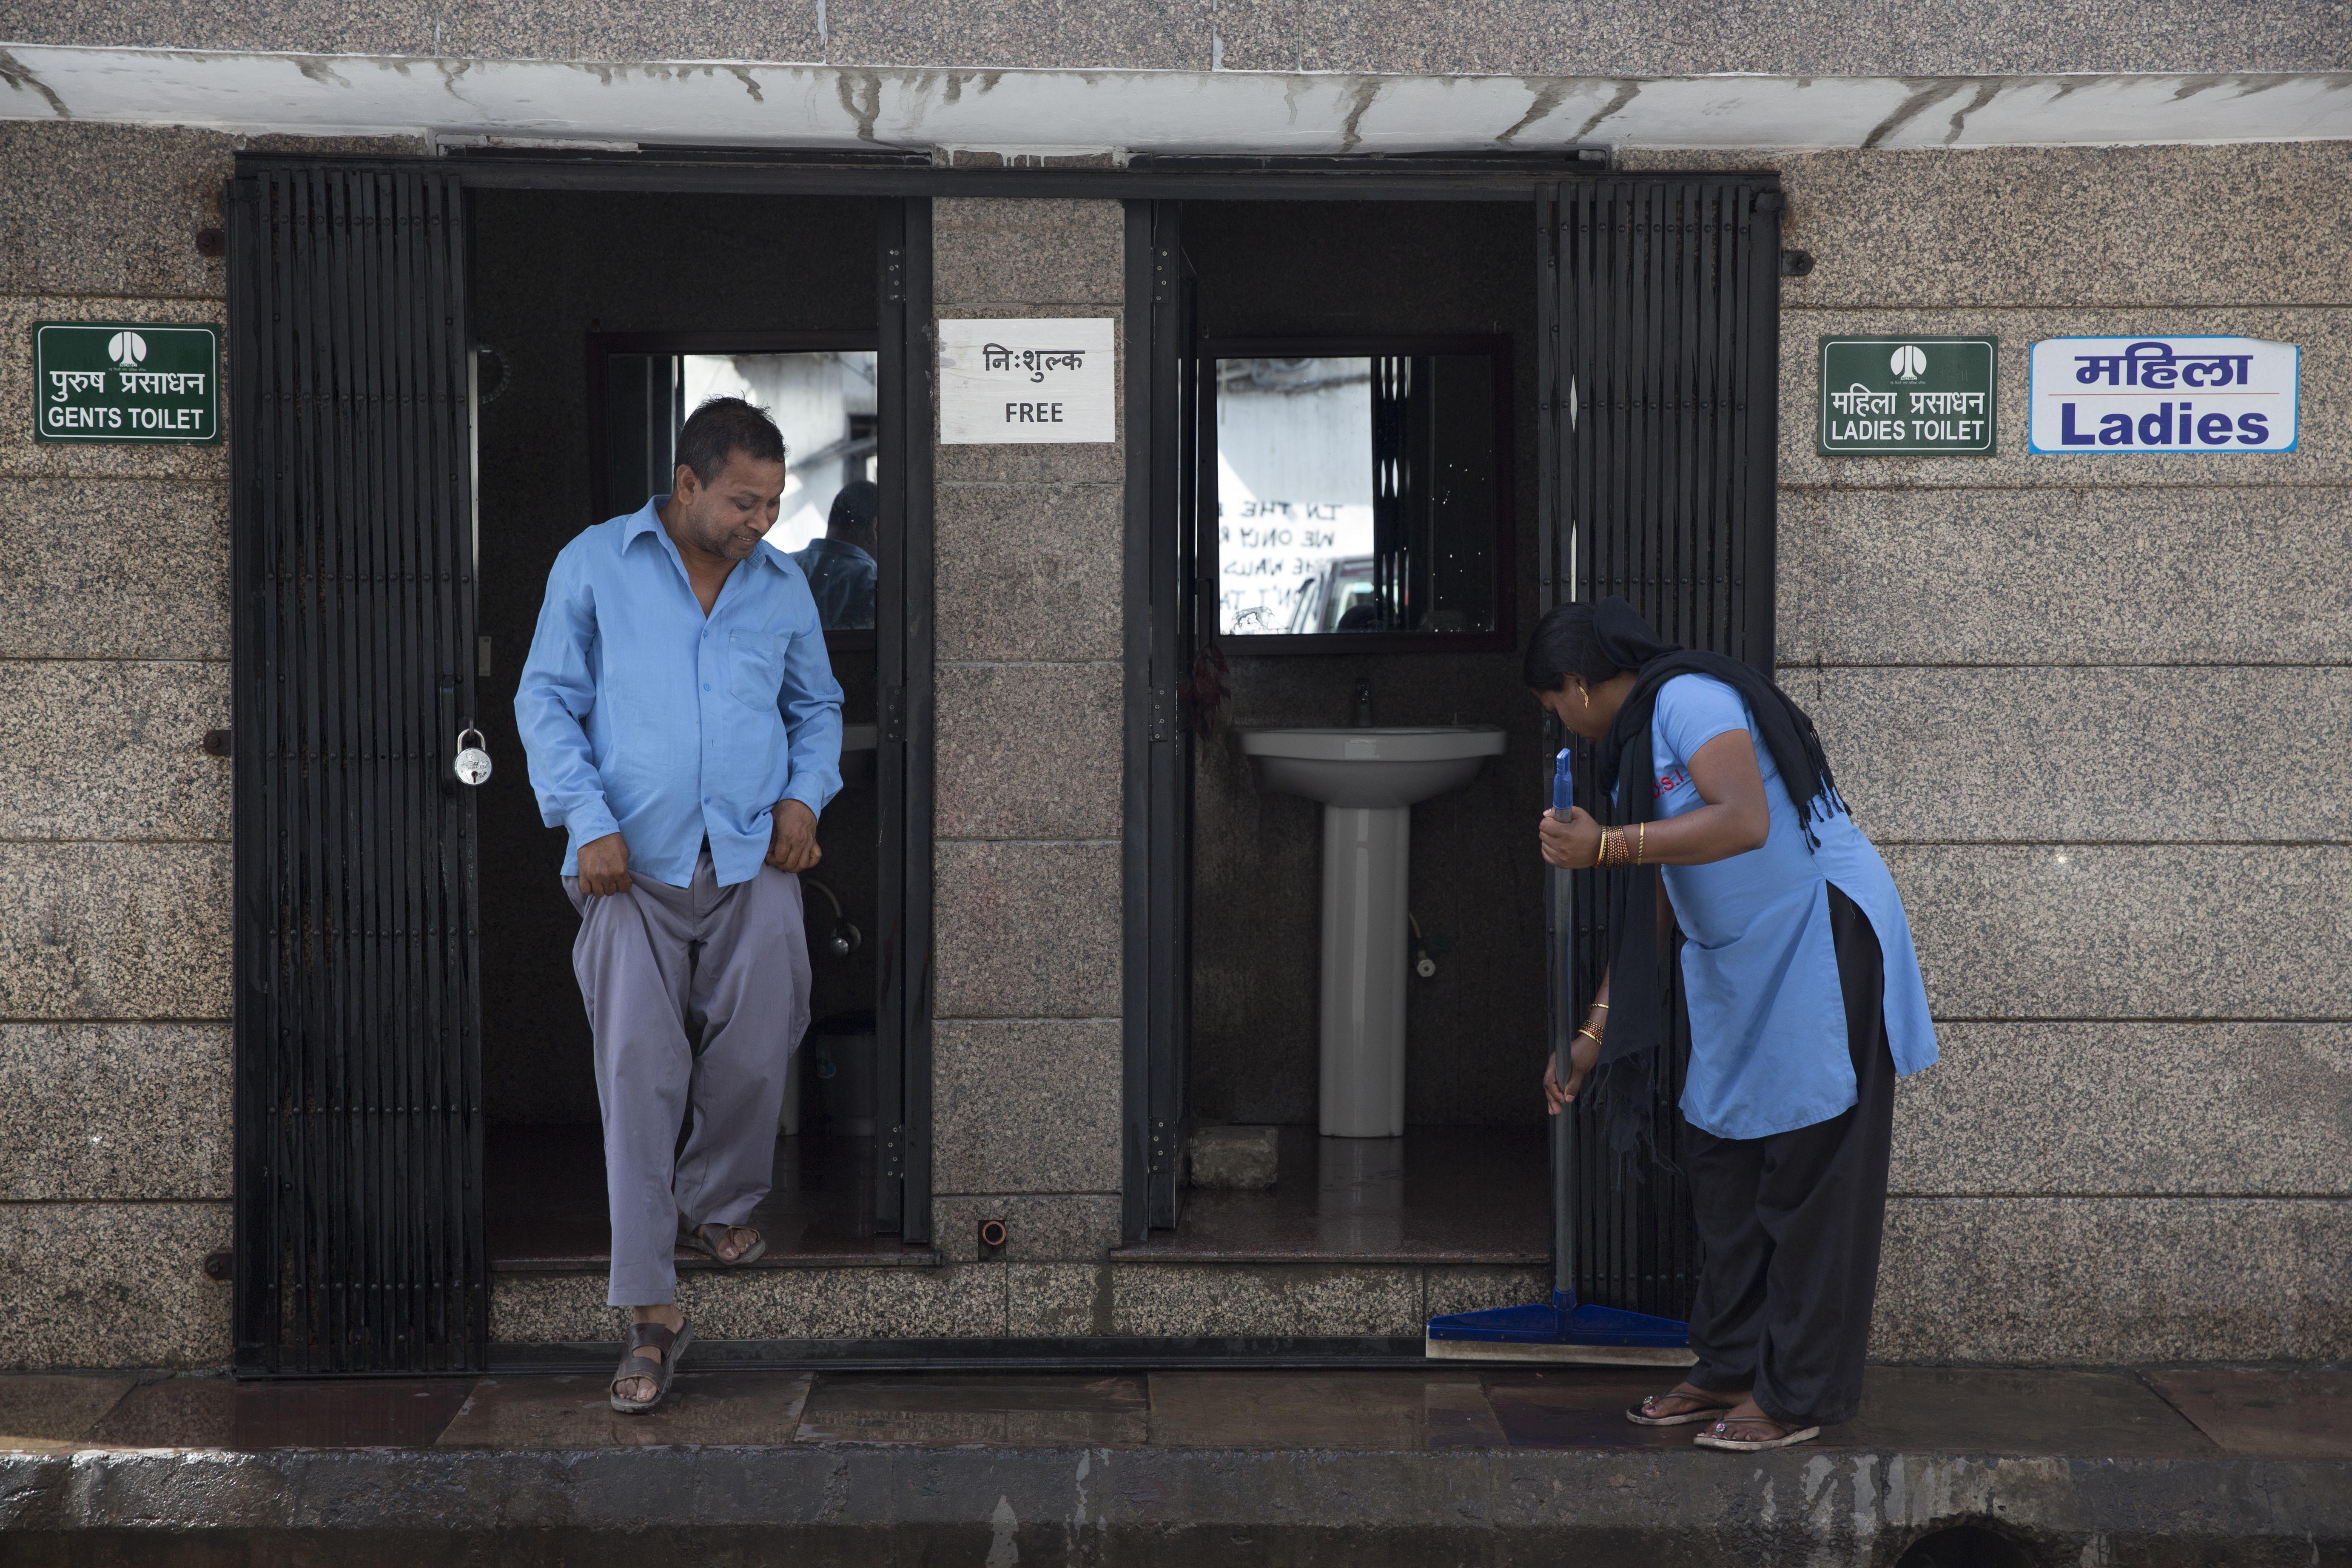 An Indian municipal worker cleans a public toilet as a man walks out in New Delhi, India, on Thursday, April 6, 2017. Photo: AP